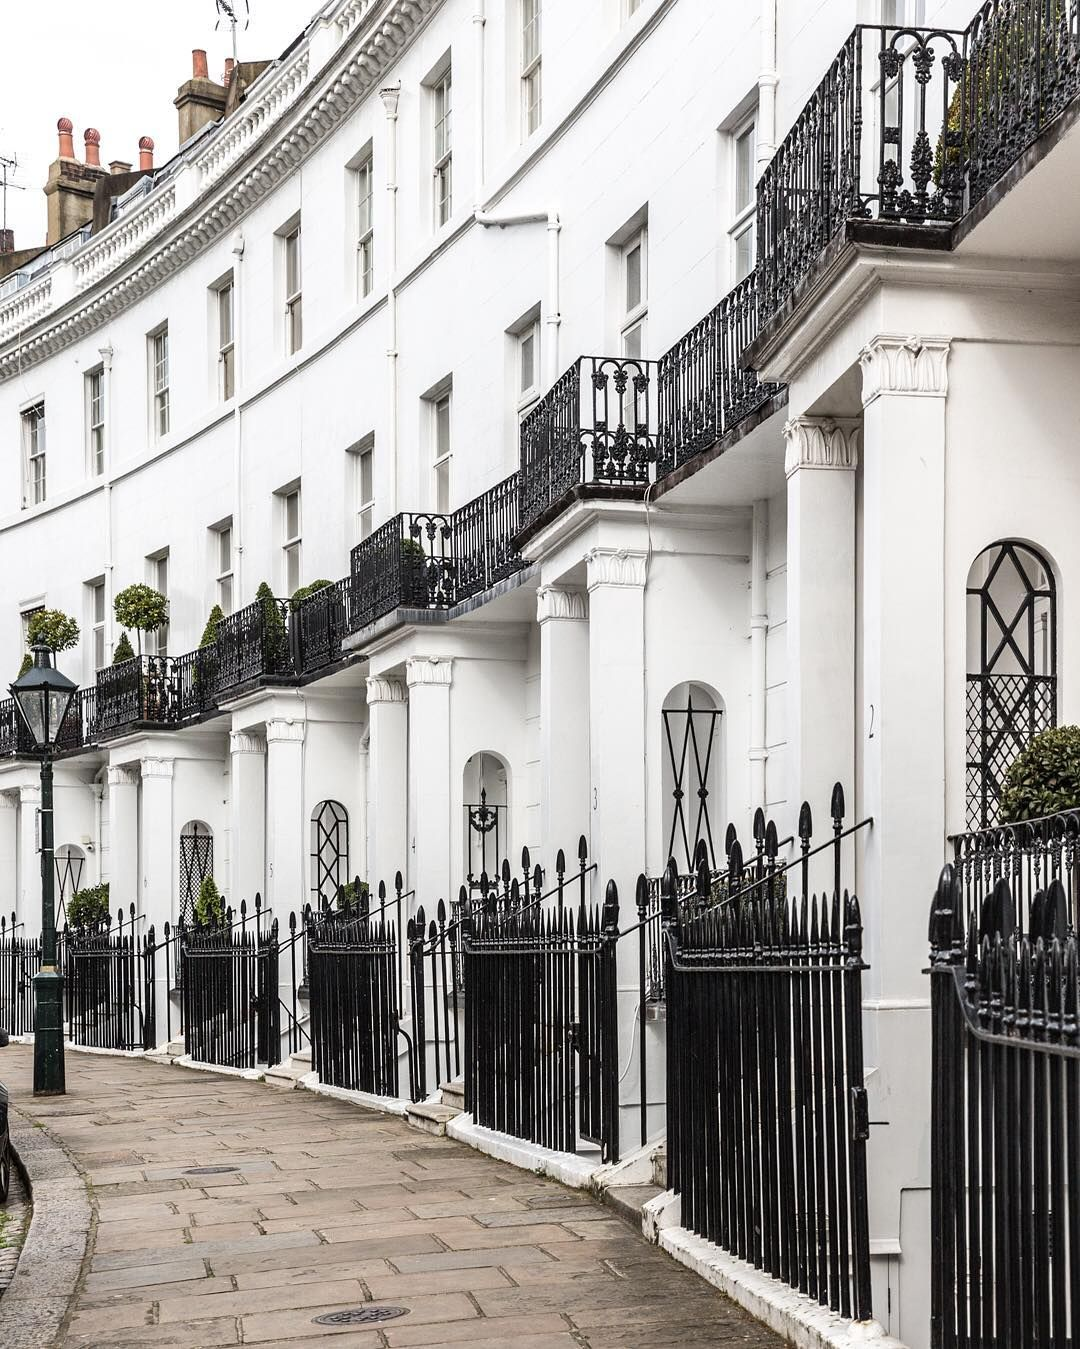 I Fall More In Love With South Kensington Every Time I Walk Down The Street Kensington London South Kensington London Kensington House